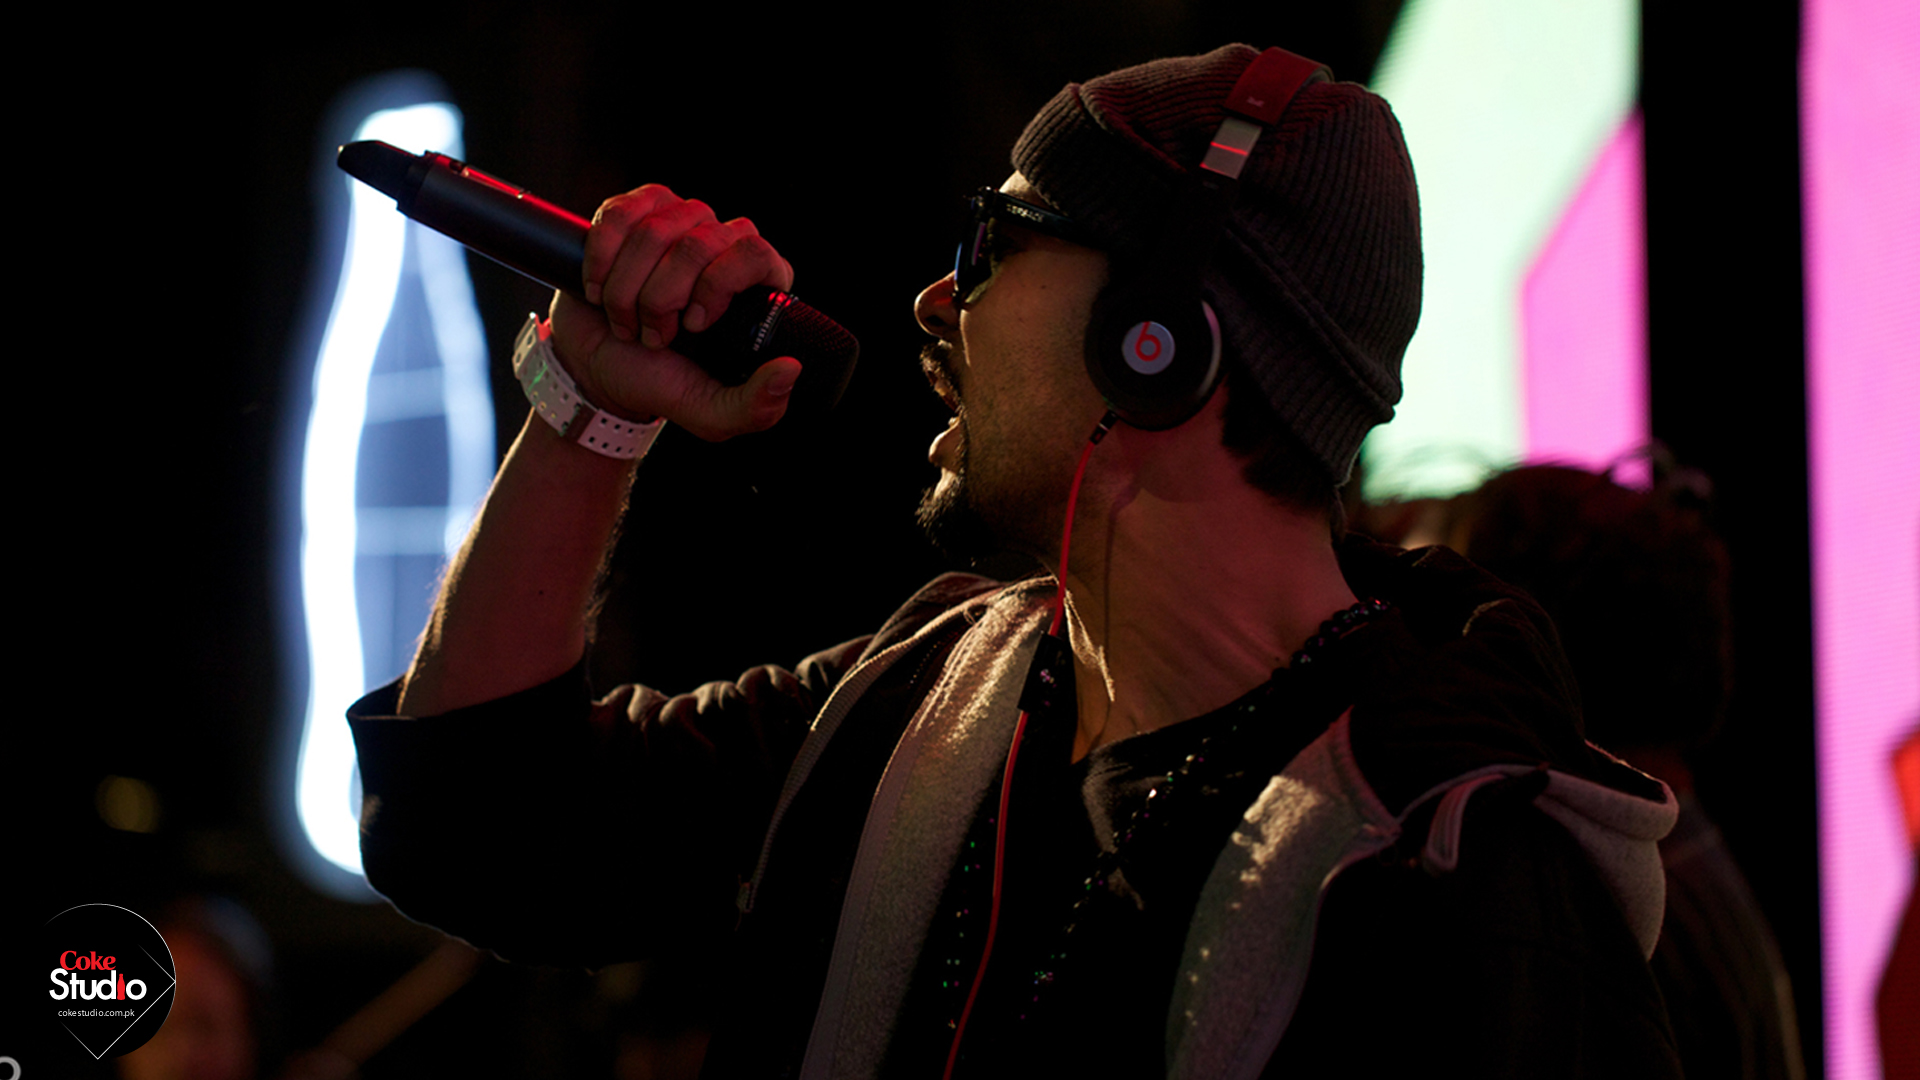 Bohemia The Punjabi Rapper performing at popular Pakistani TV music series, Coke Studio